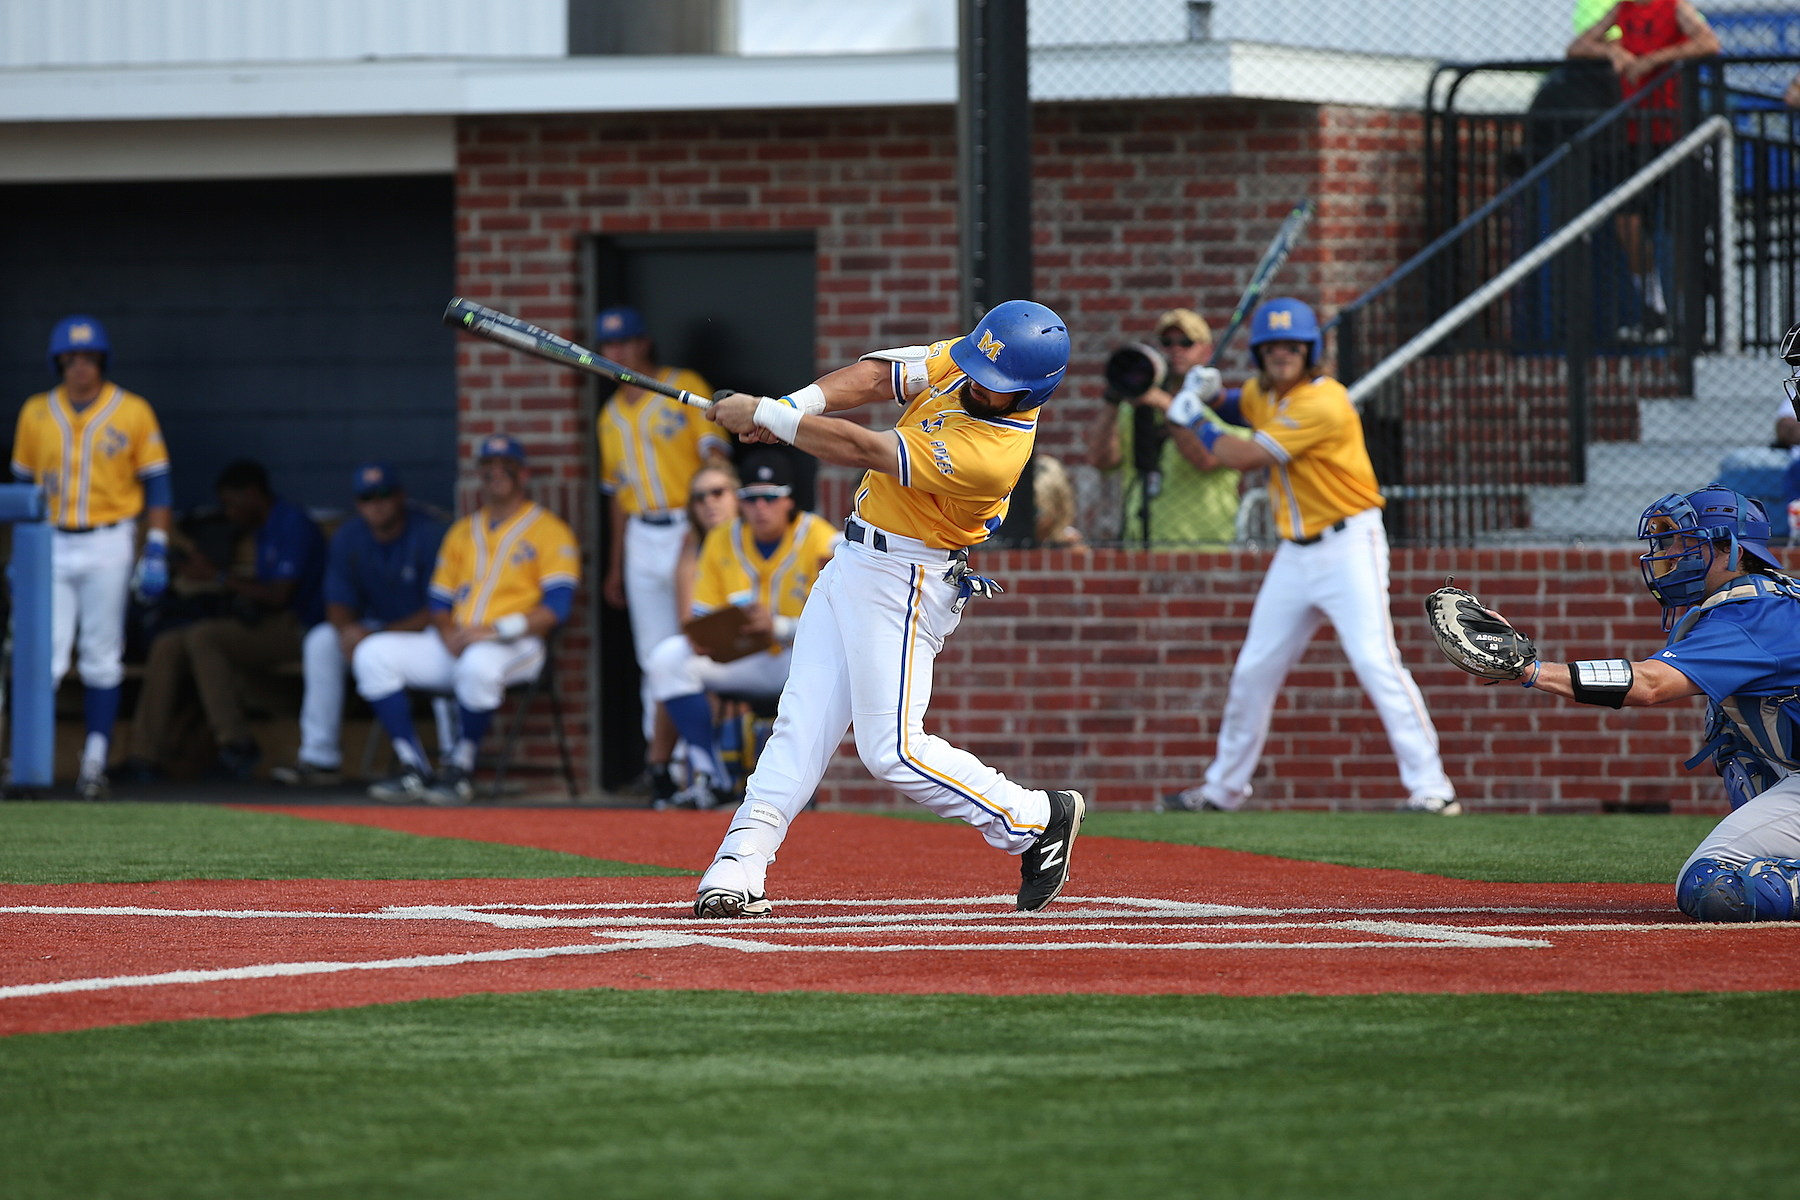 McNeese Baseball (Photo provided by Matt Bonnette MSU)